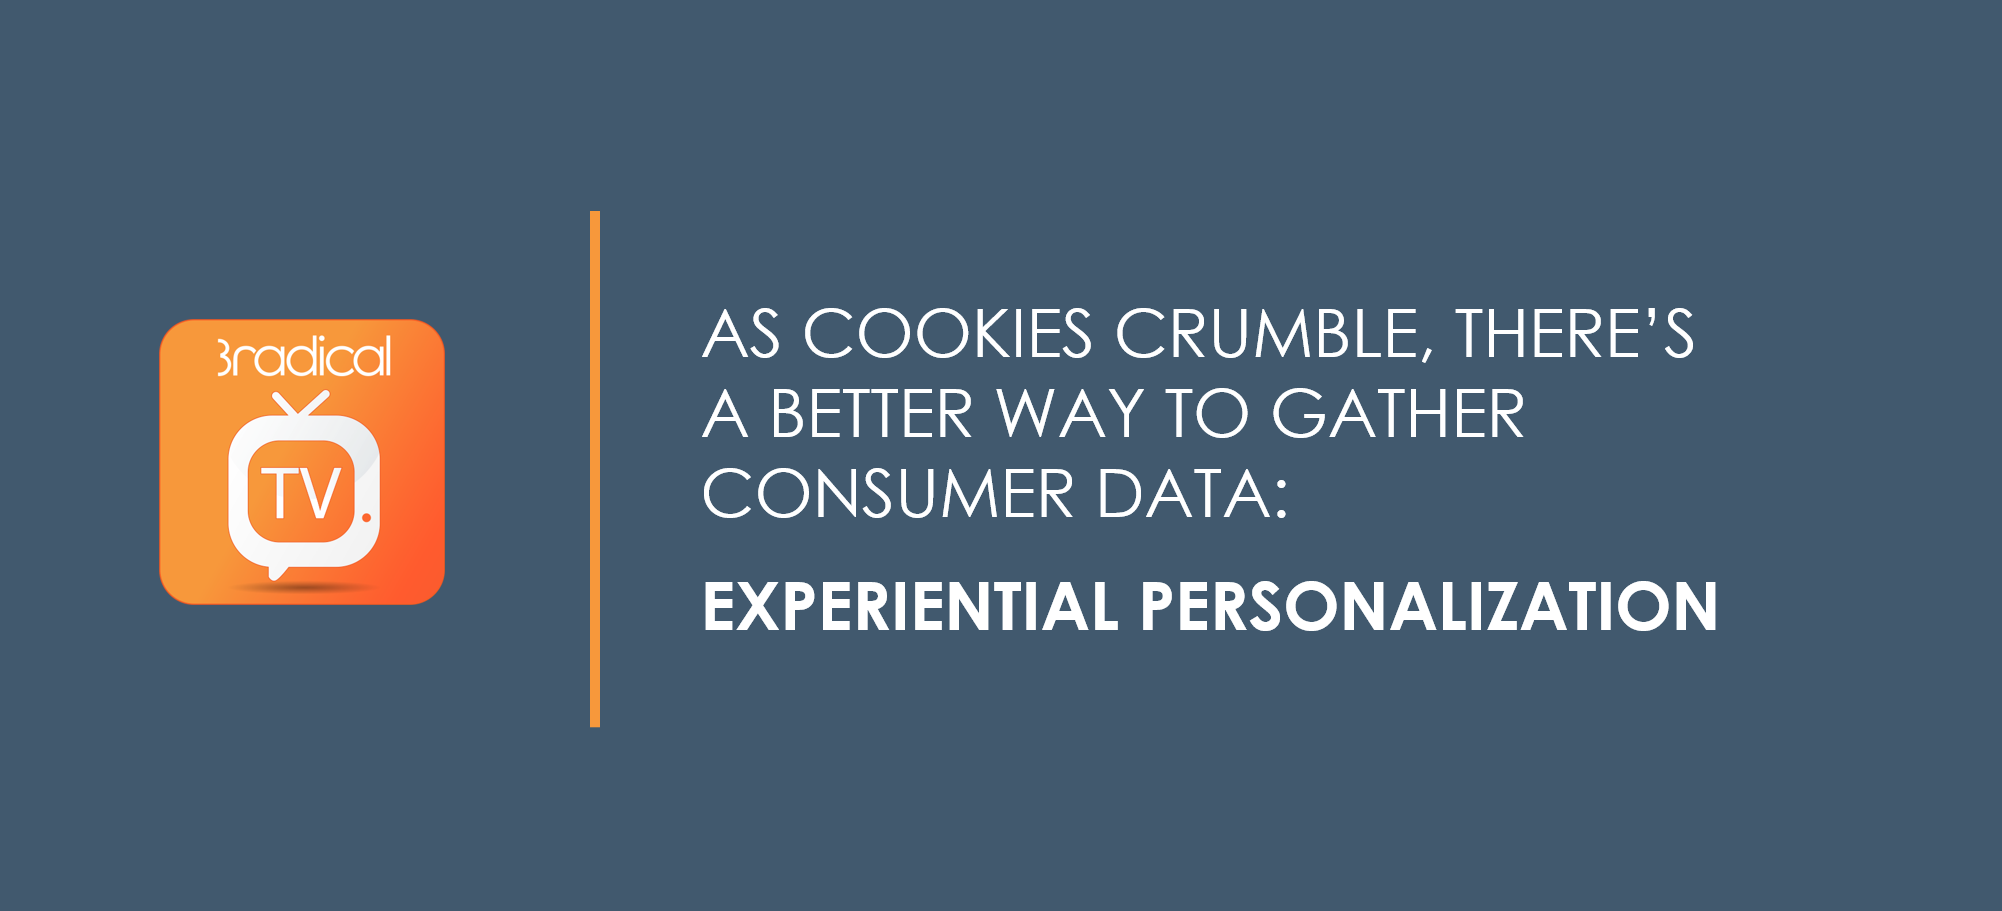 Experiential Personalization – the better way to gather consumer data